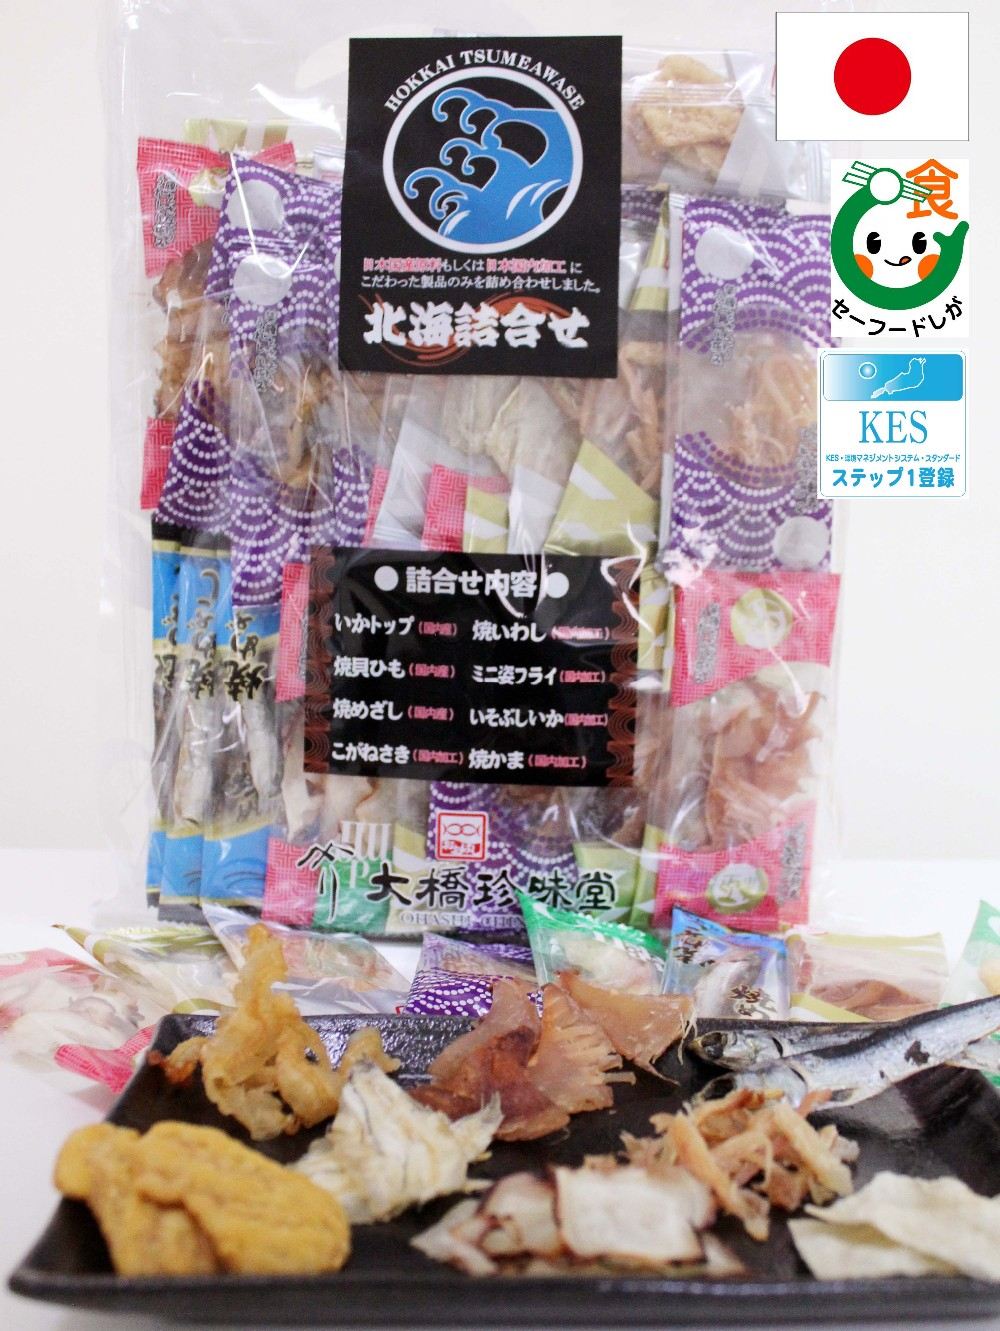 Japanese style of guppy fish rice cracker at reasonable prices.